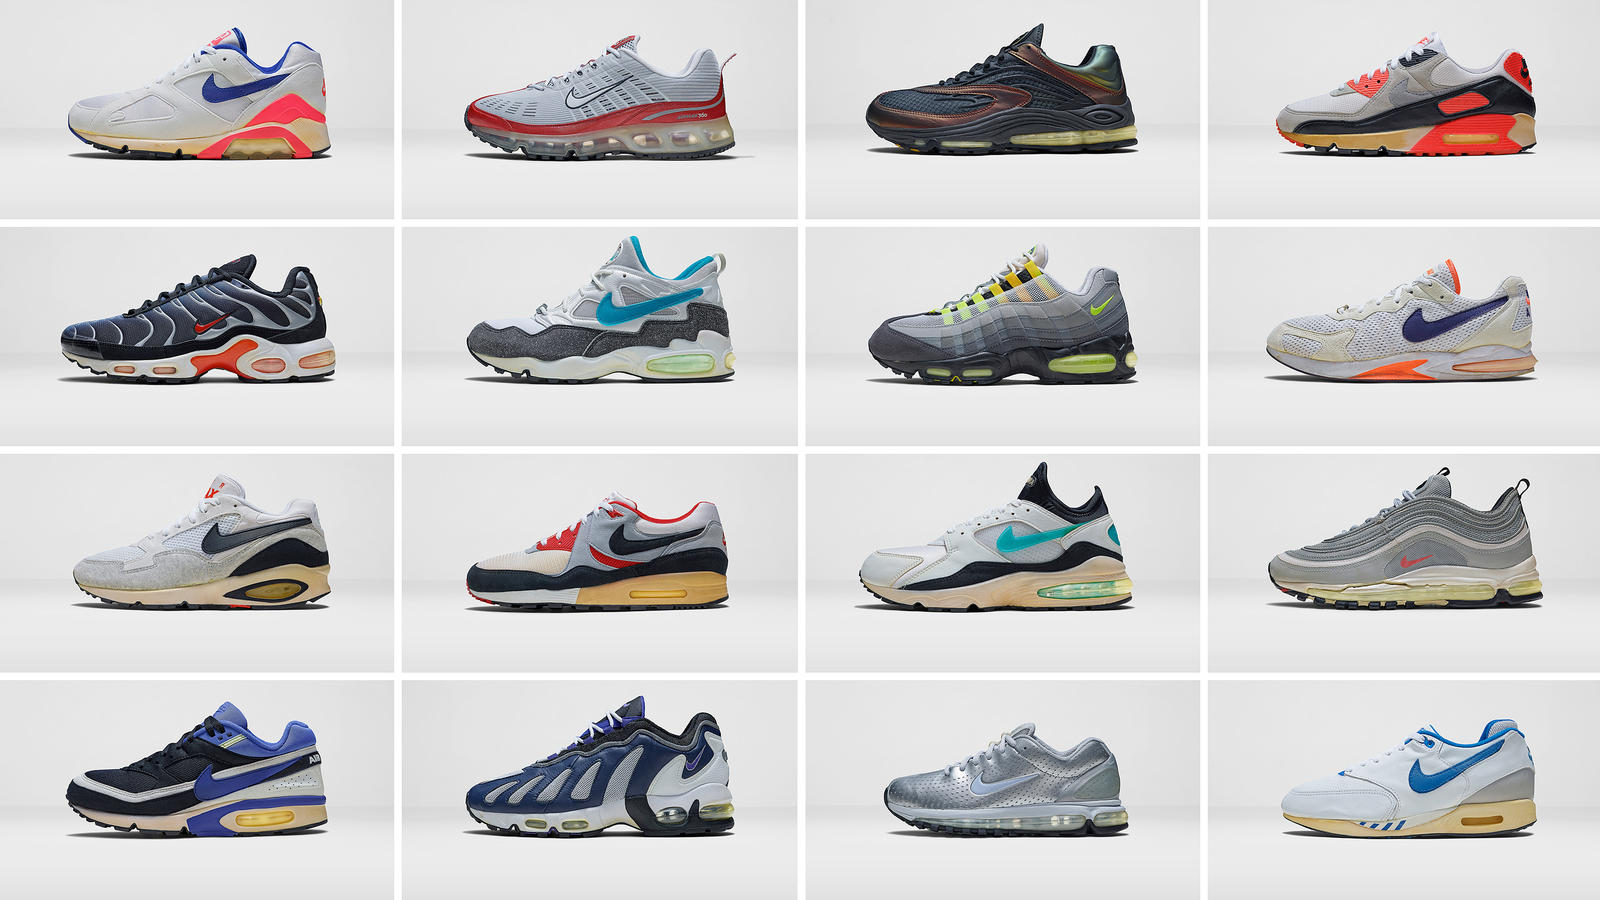 Meilleur site web nike air max all noir 8QD30